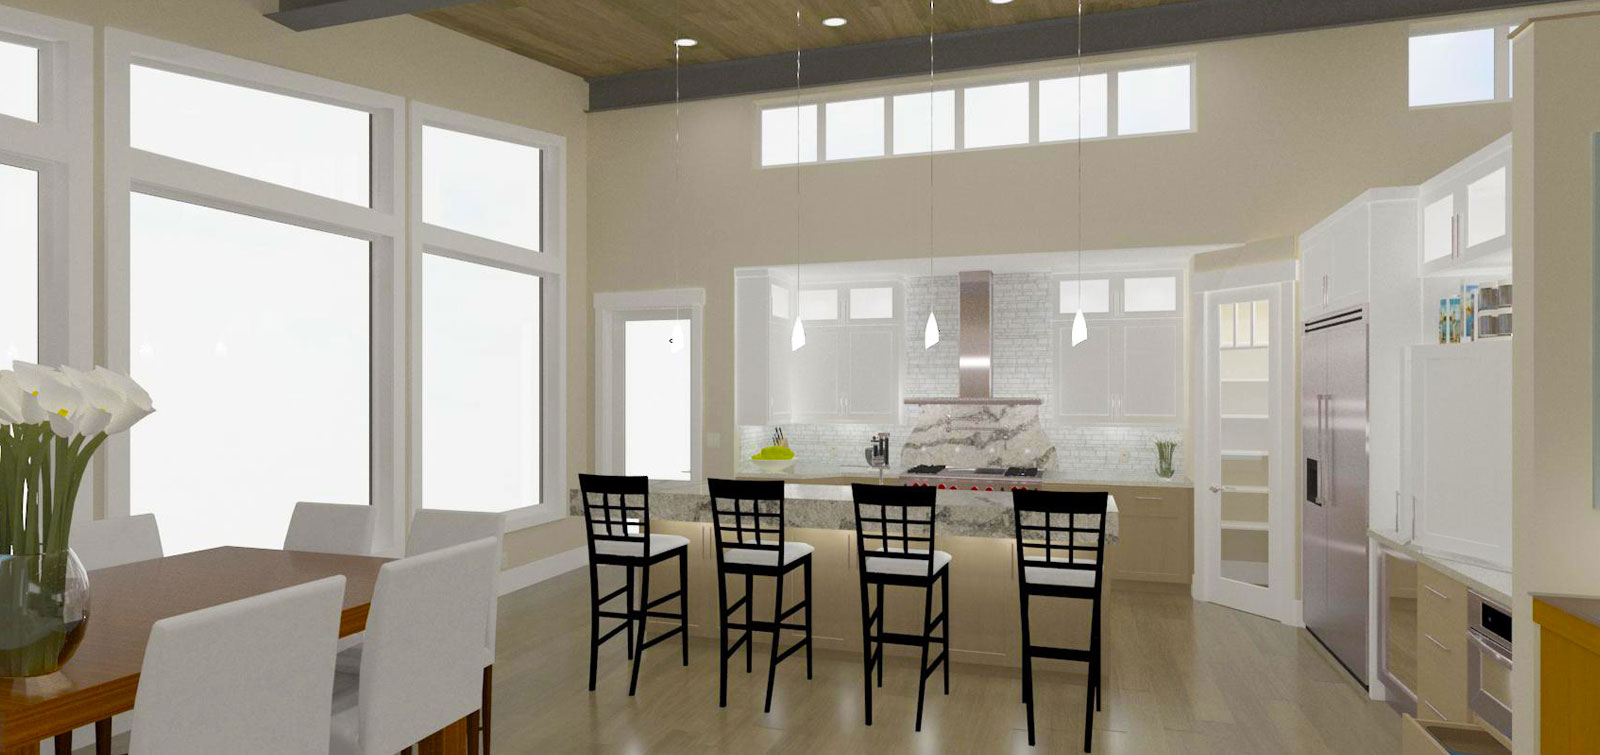 ... Interior Software Design In Action. Split Screen Slider Of Realistic 3D  Rendering